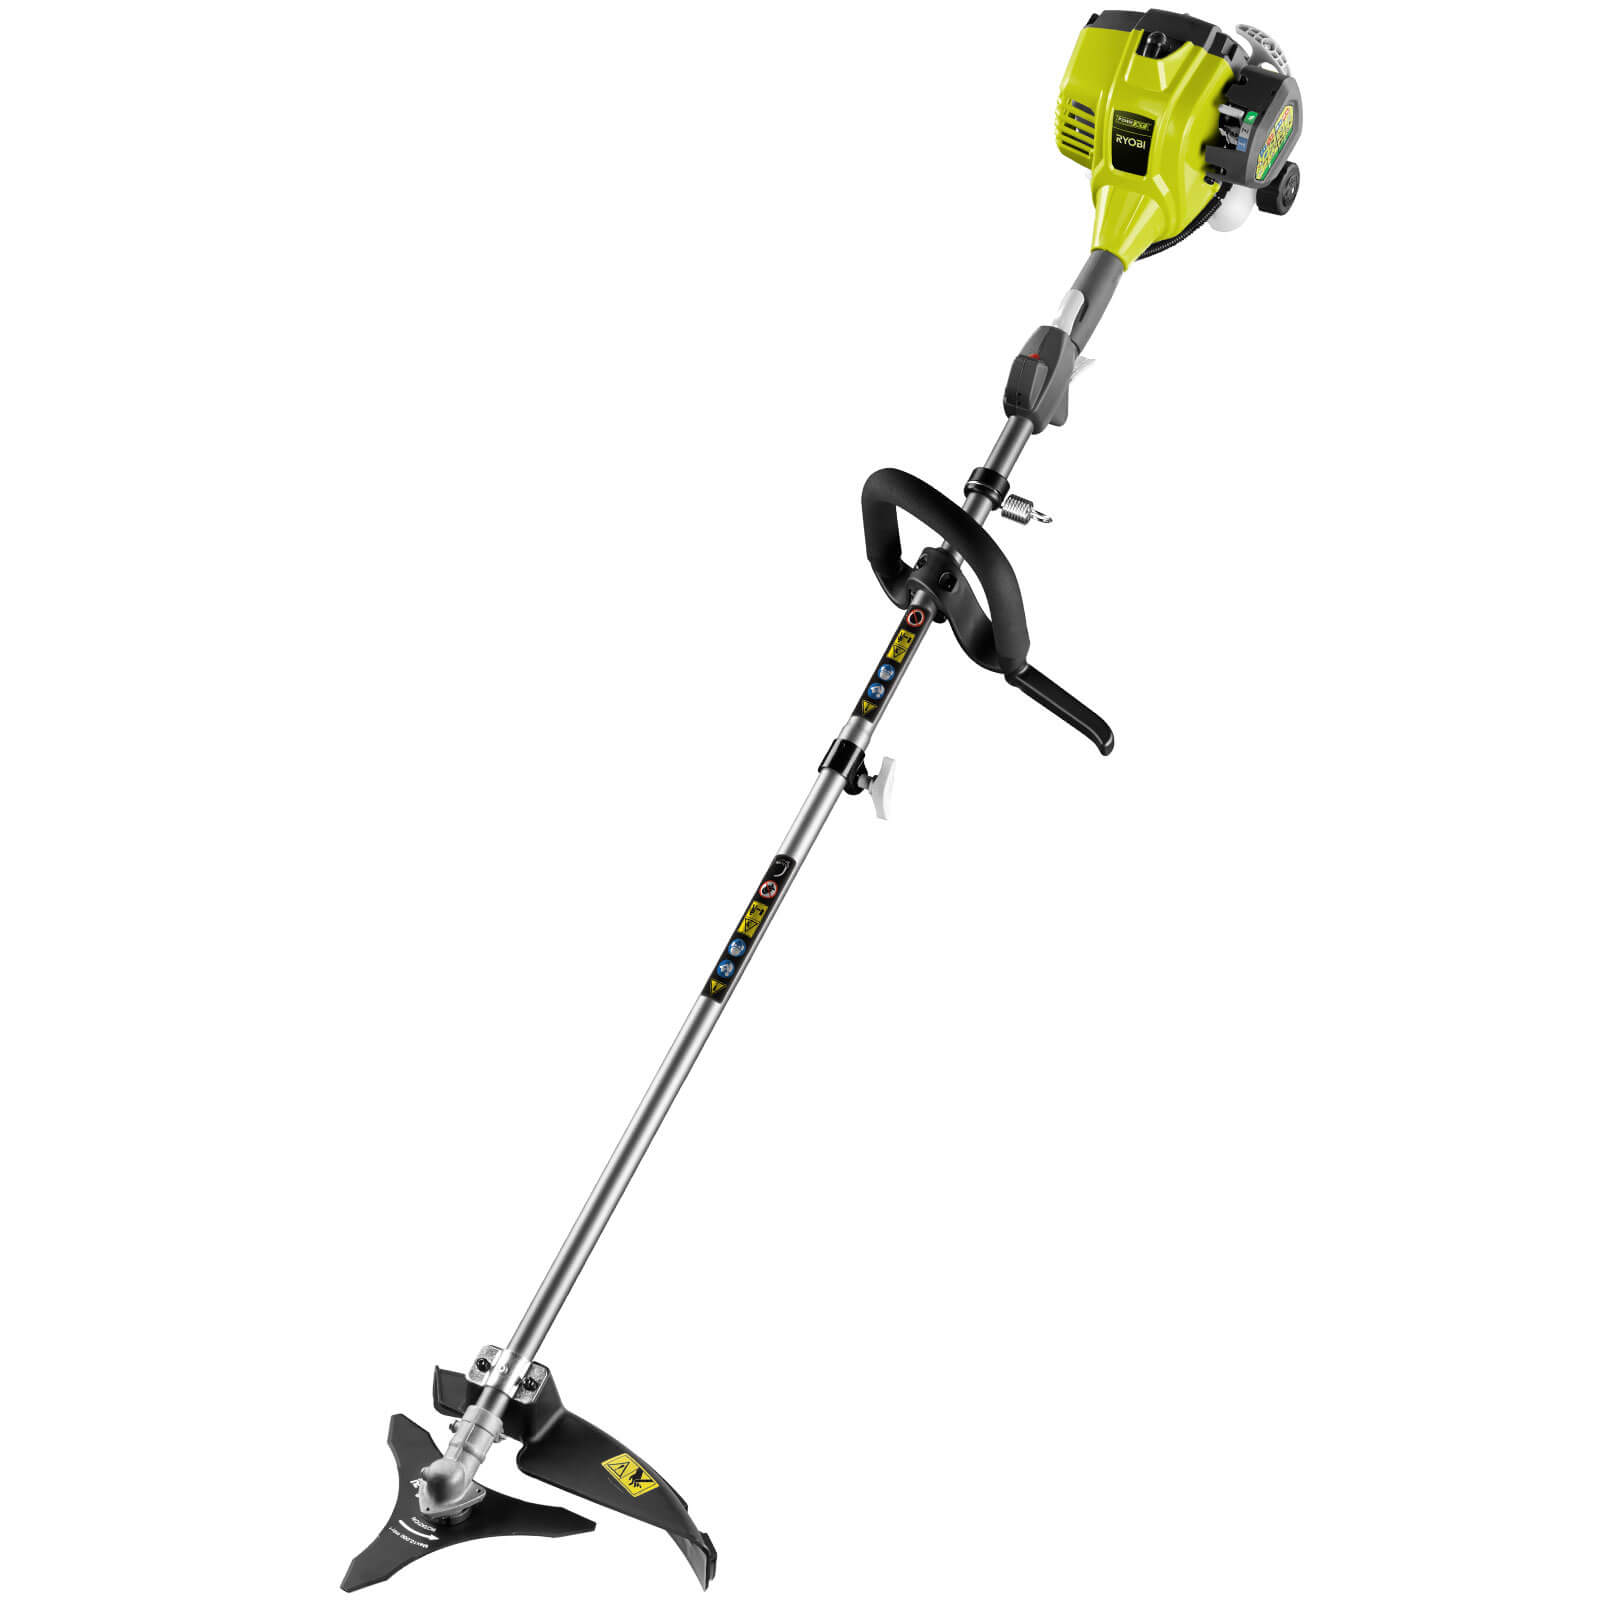 Ryobi Rbc254seso Petrol Expand It 2 In 1 Grass Trimmer